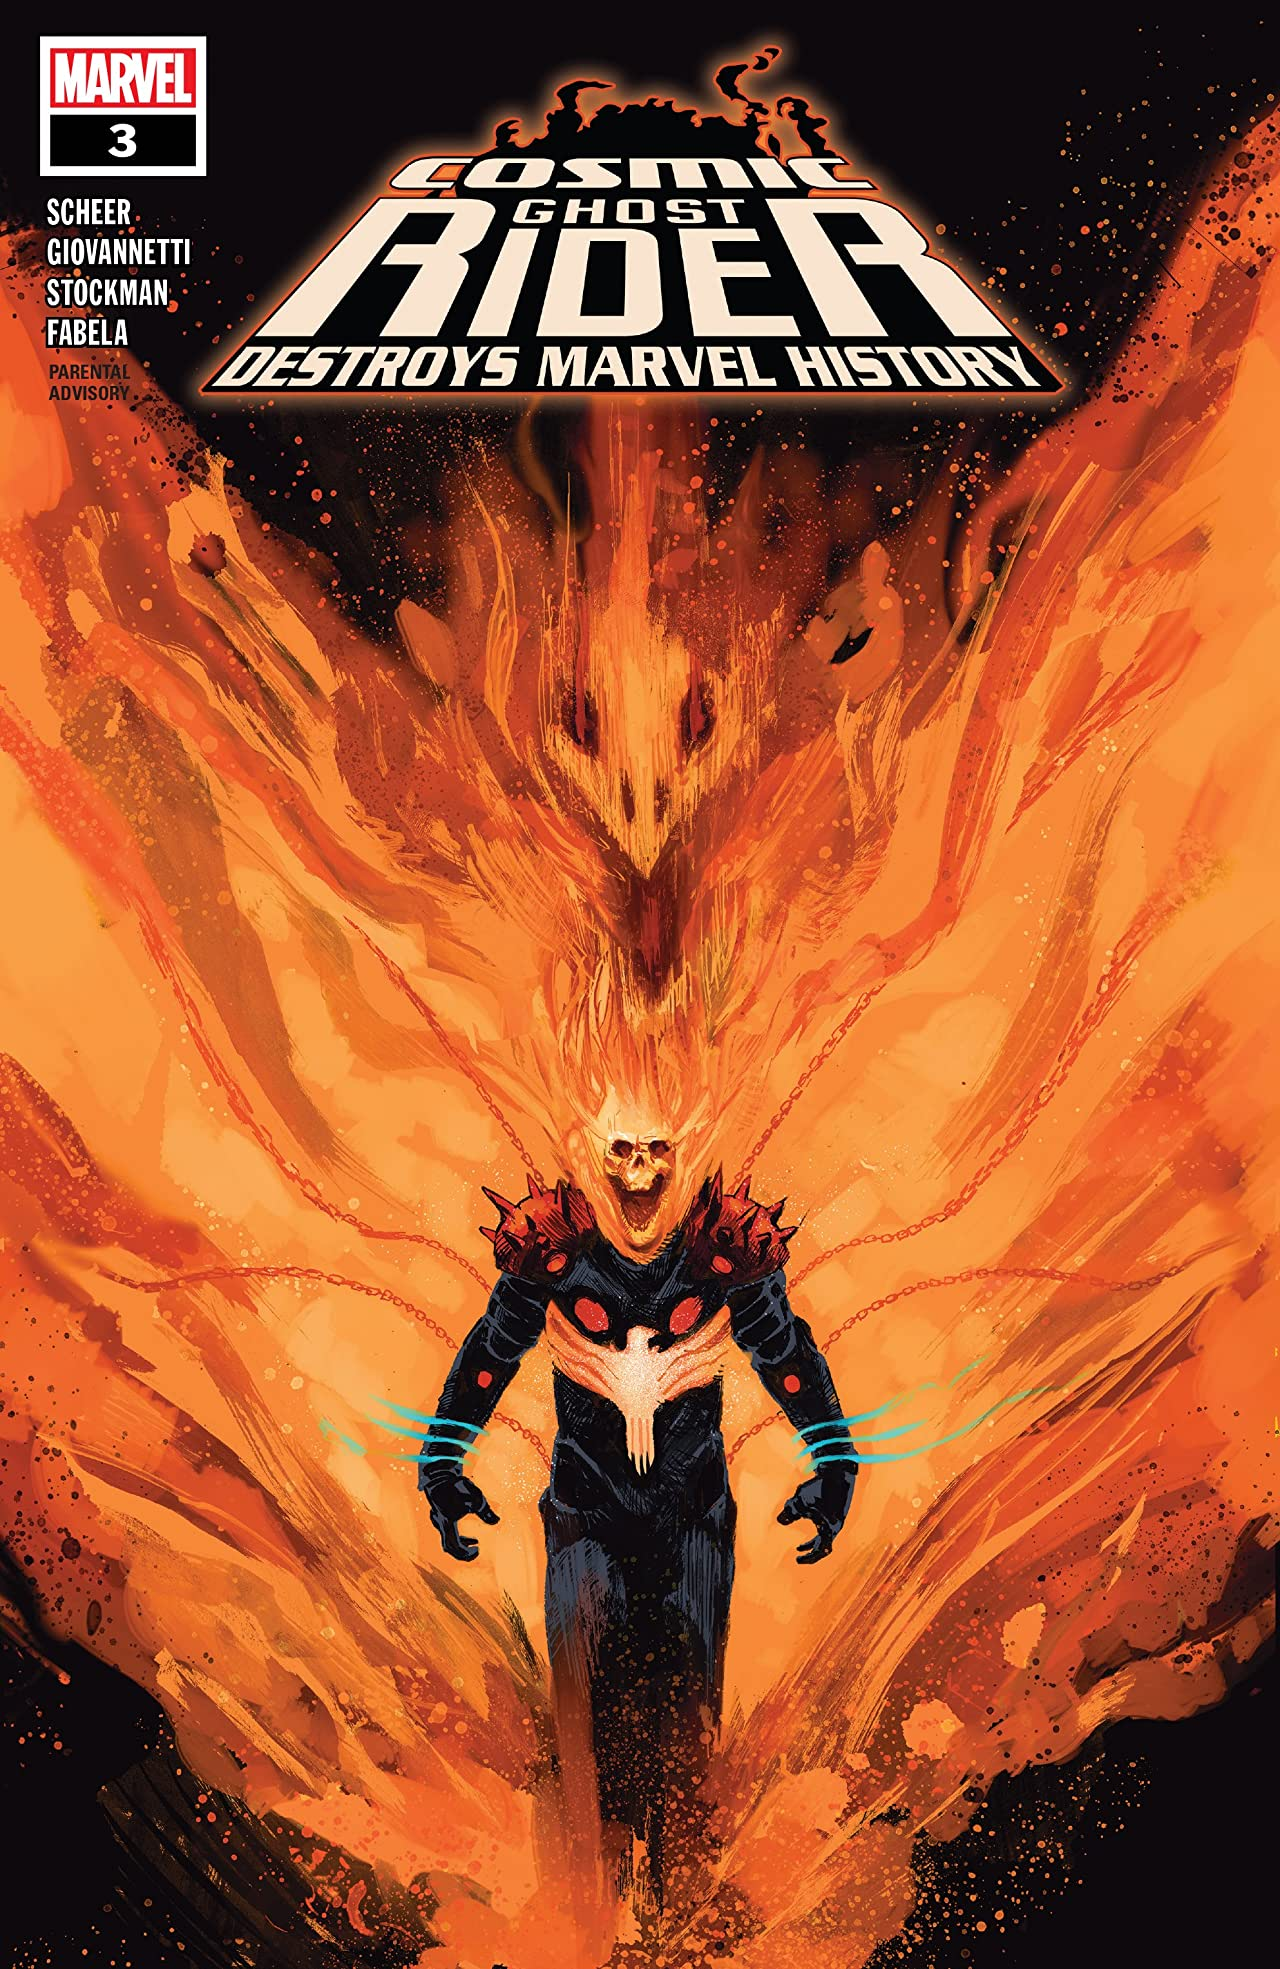 Cosmic Ghost Rider Destroys Marvel History (2019) #3 (of 6)